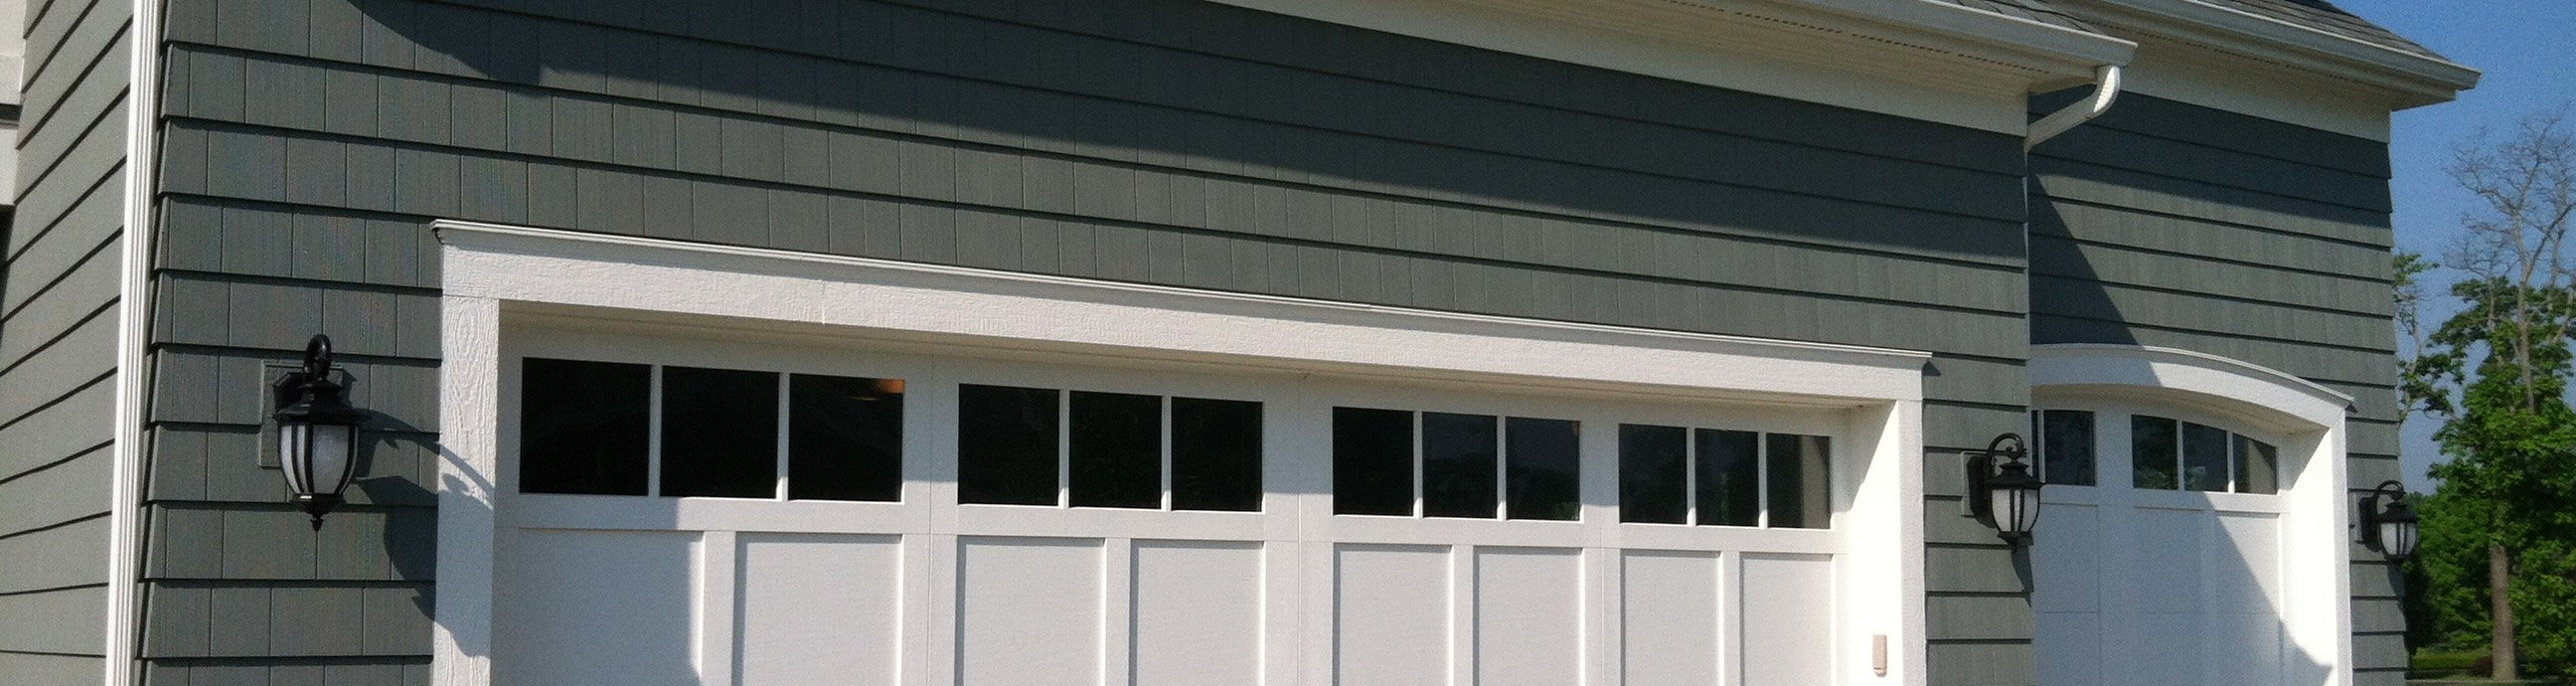 Gallery nofziger garage doors for Dublin garage door repair